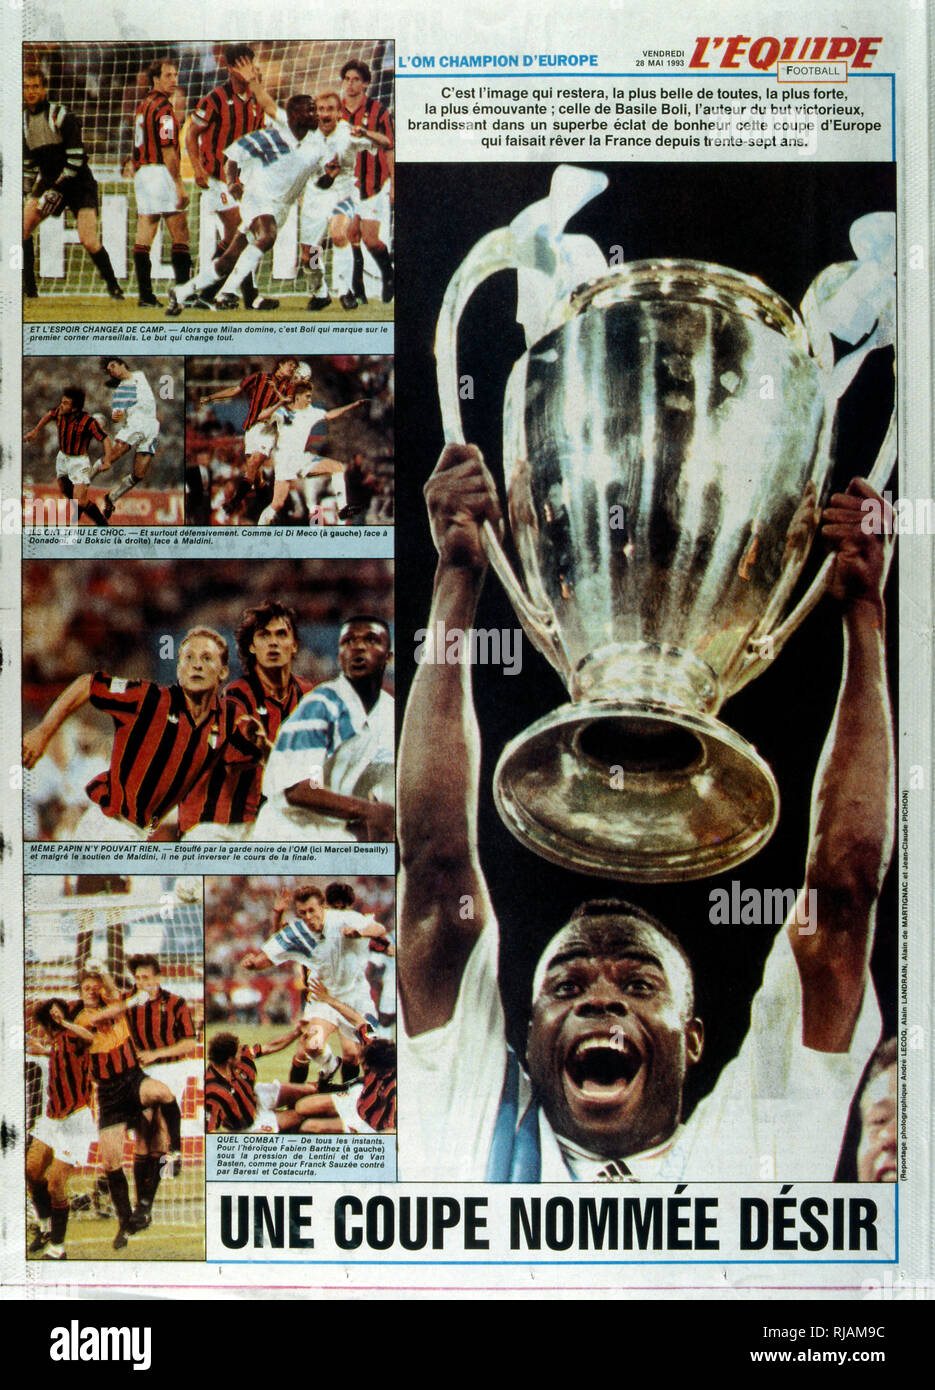 French publication 'L'Equipe' reporting the Marseilles Football club winning the UEFA Champions League in 1993. The highlight of the Marseilles football club's history was winning the new format UEFA Champions League in 1993. Basile Boli scored the only goal against Italy's Milan in the final held in Munich's Olympic Stadium. This triumph, however, was followed by a decade of decline. In 1994, due to financial irregularities and a match fixing scandal involving then president Bernard Tapie - Stock Image